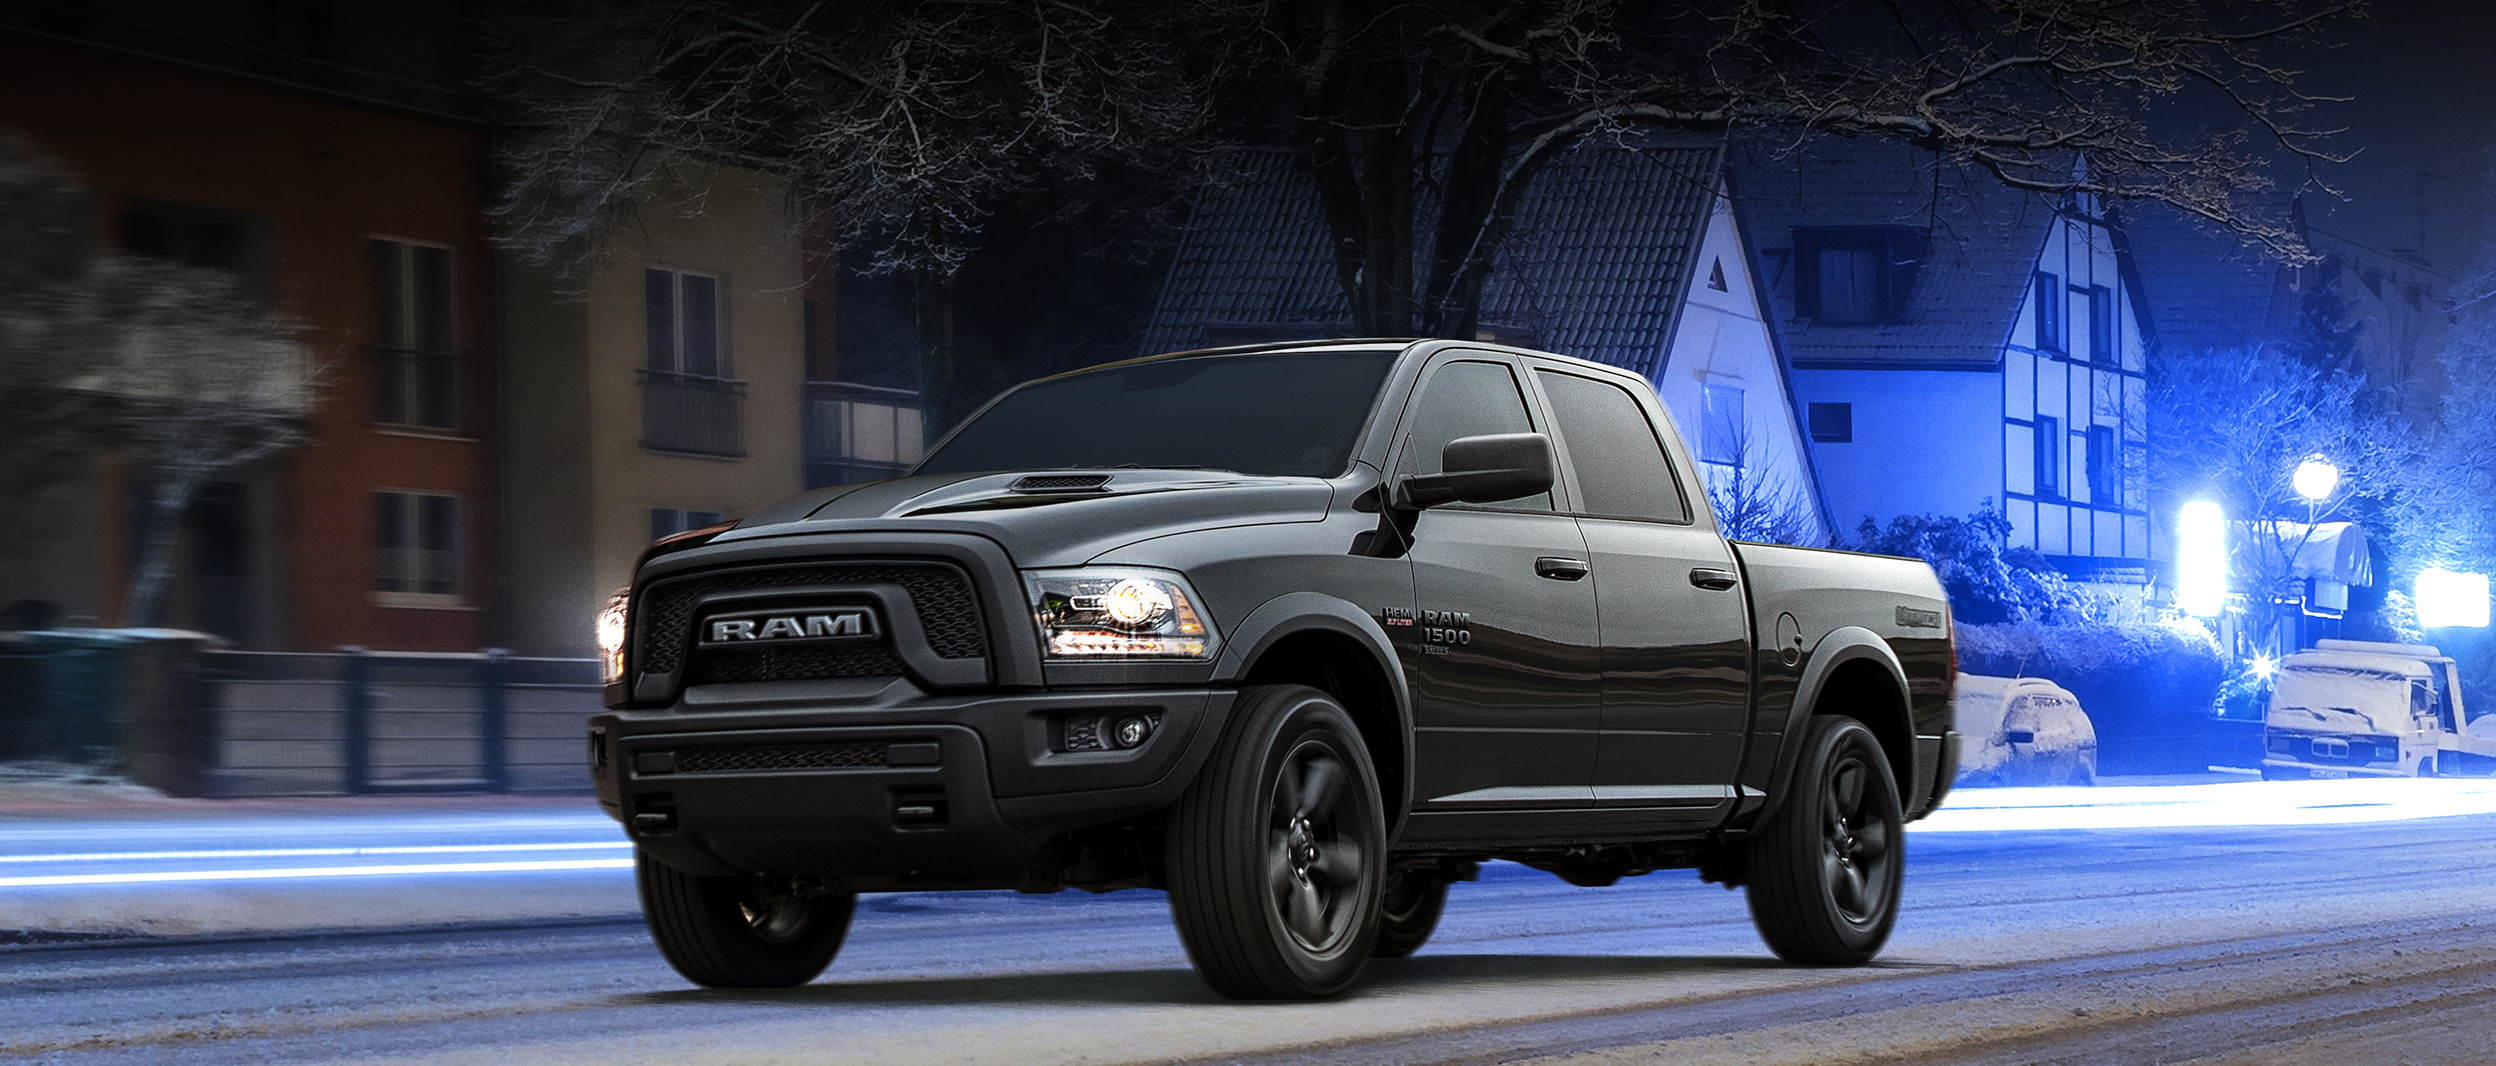 A black 2020 Ram 1500 Classic Warlock driving down a snow-covered street at night